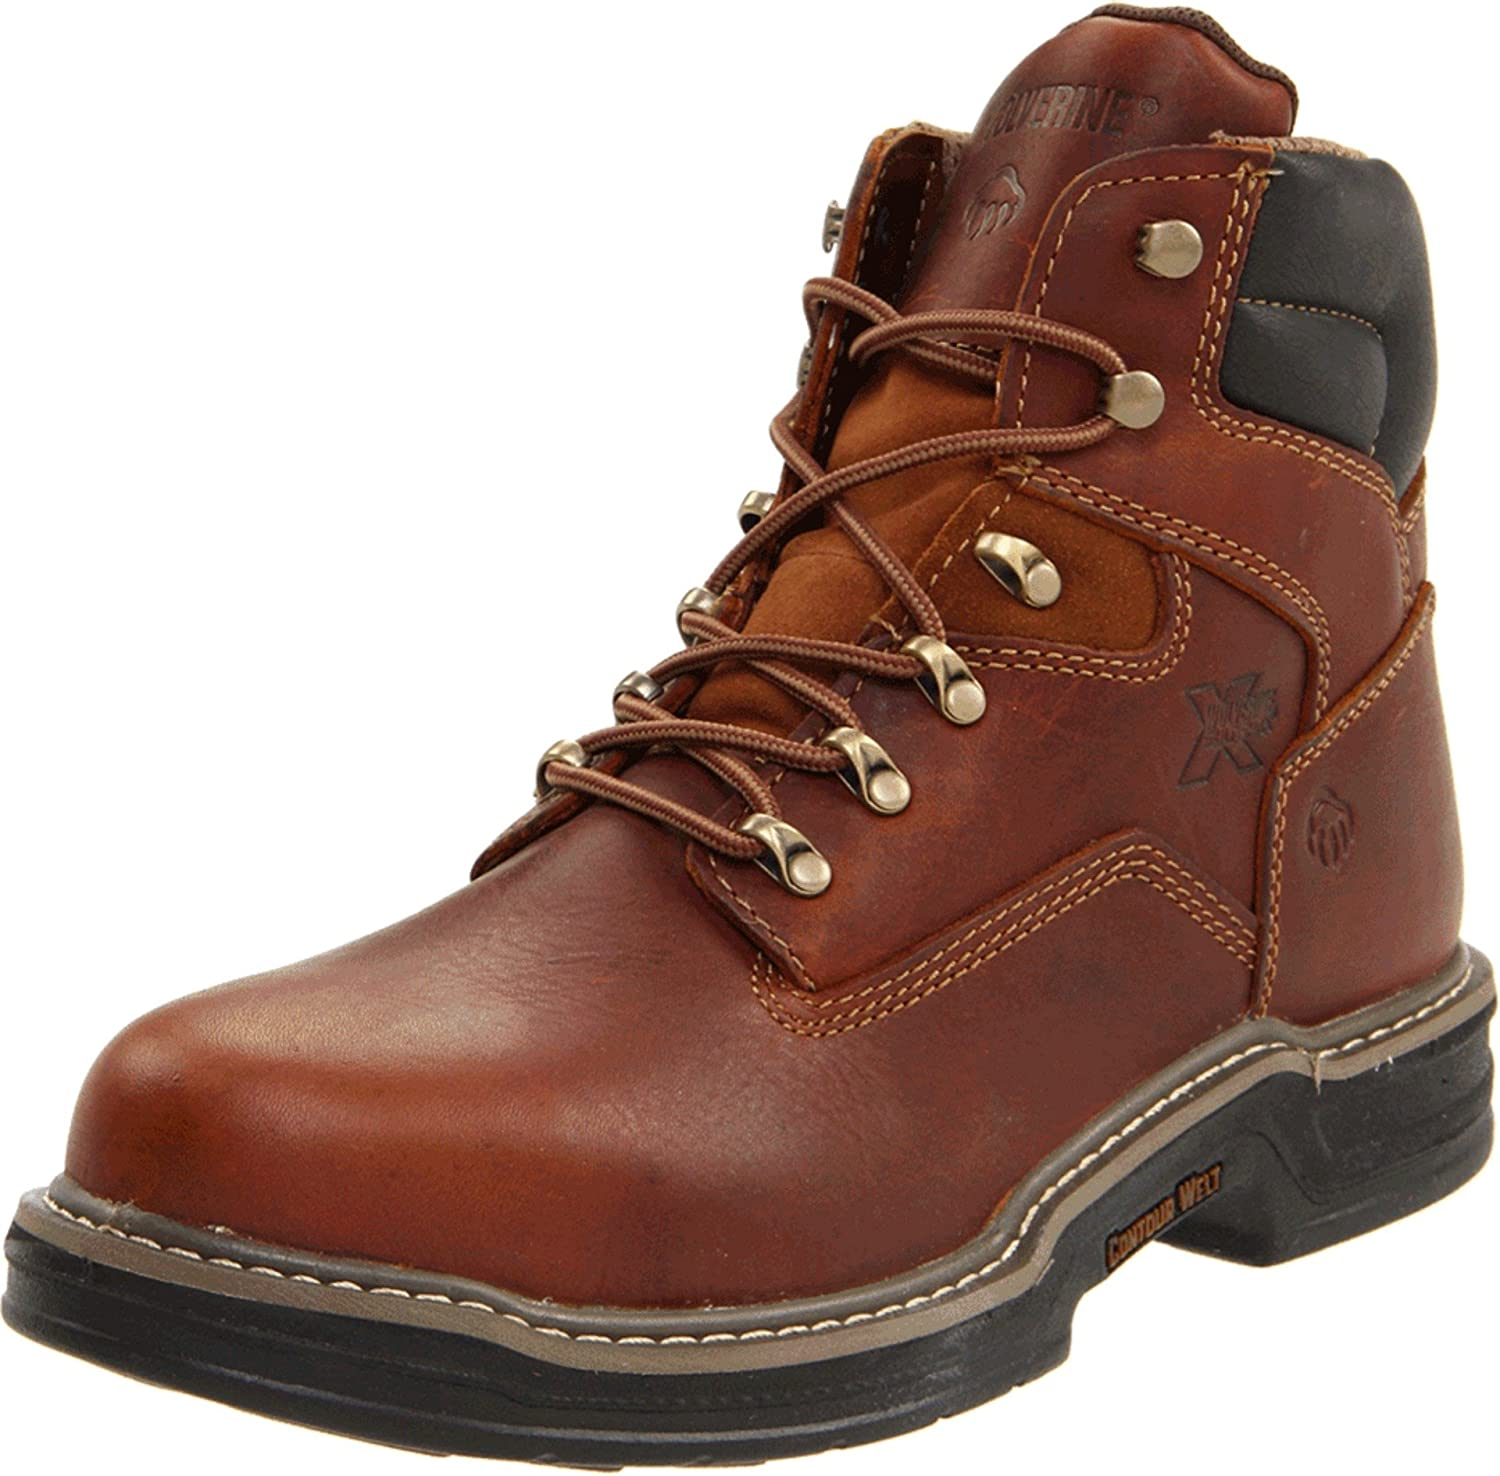 Wolverine Men's Steel Toe Raider Boot W02419 Raider-M